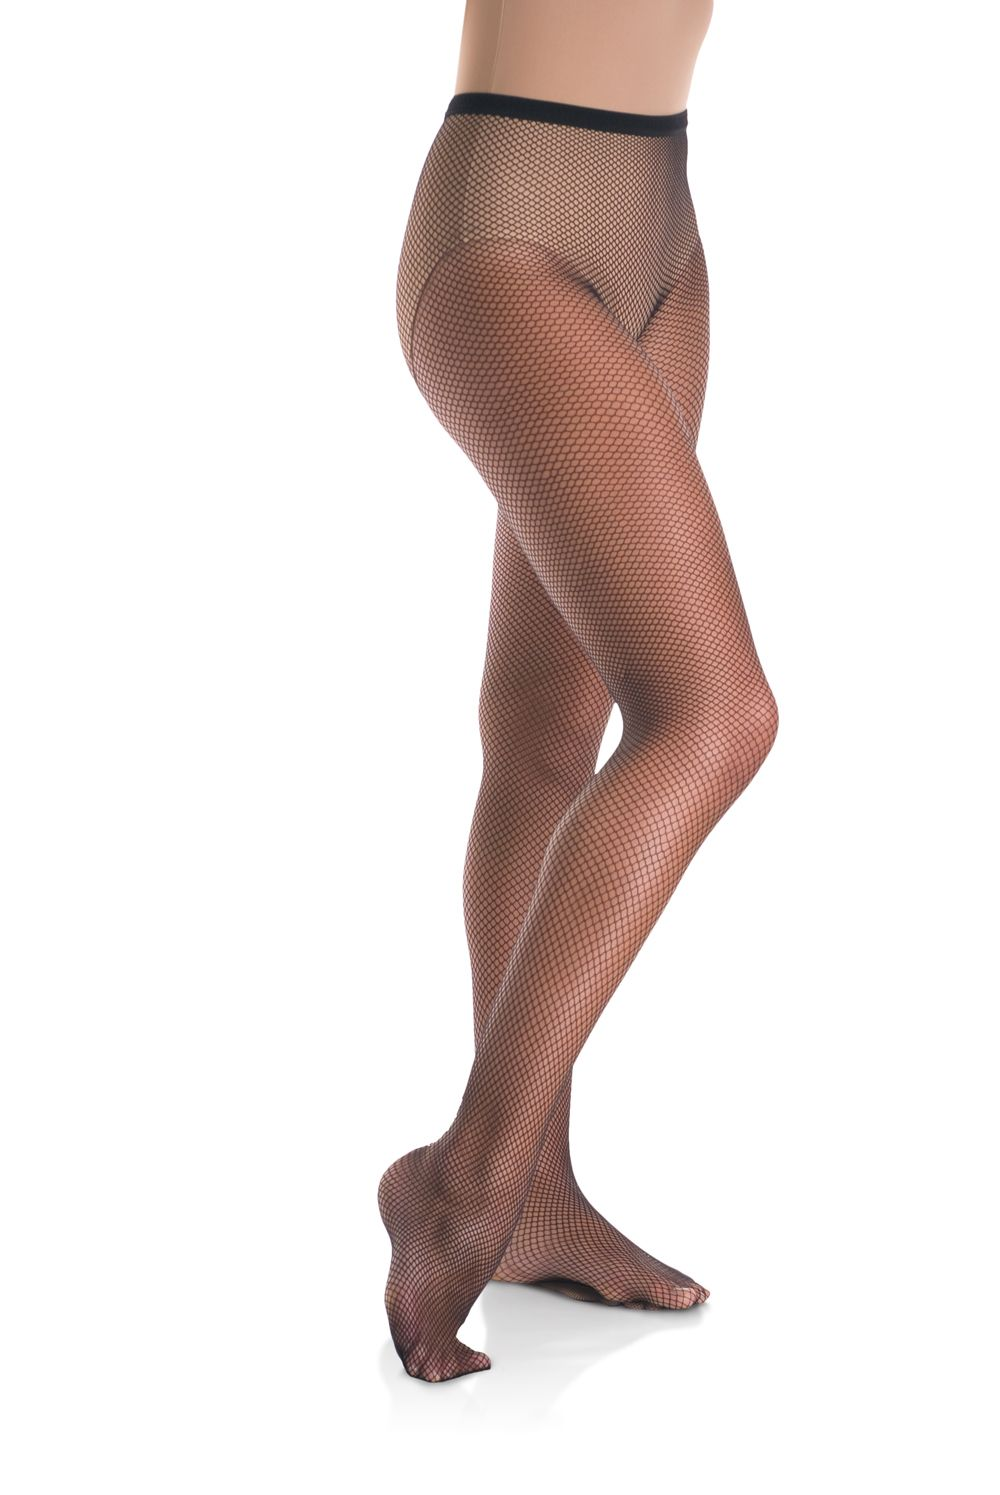 Mondor Caberet Fishnet Tights - 324